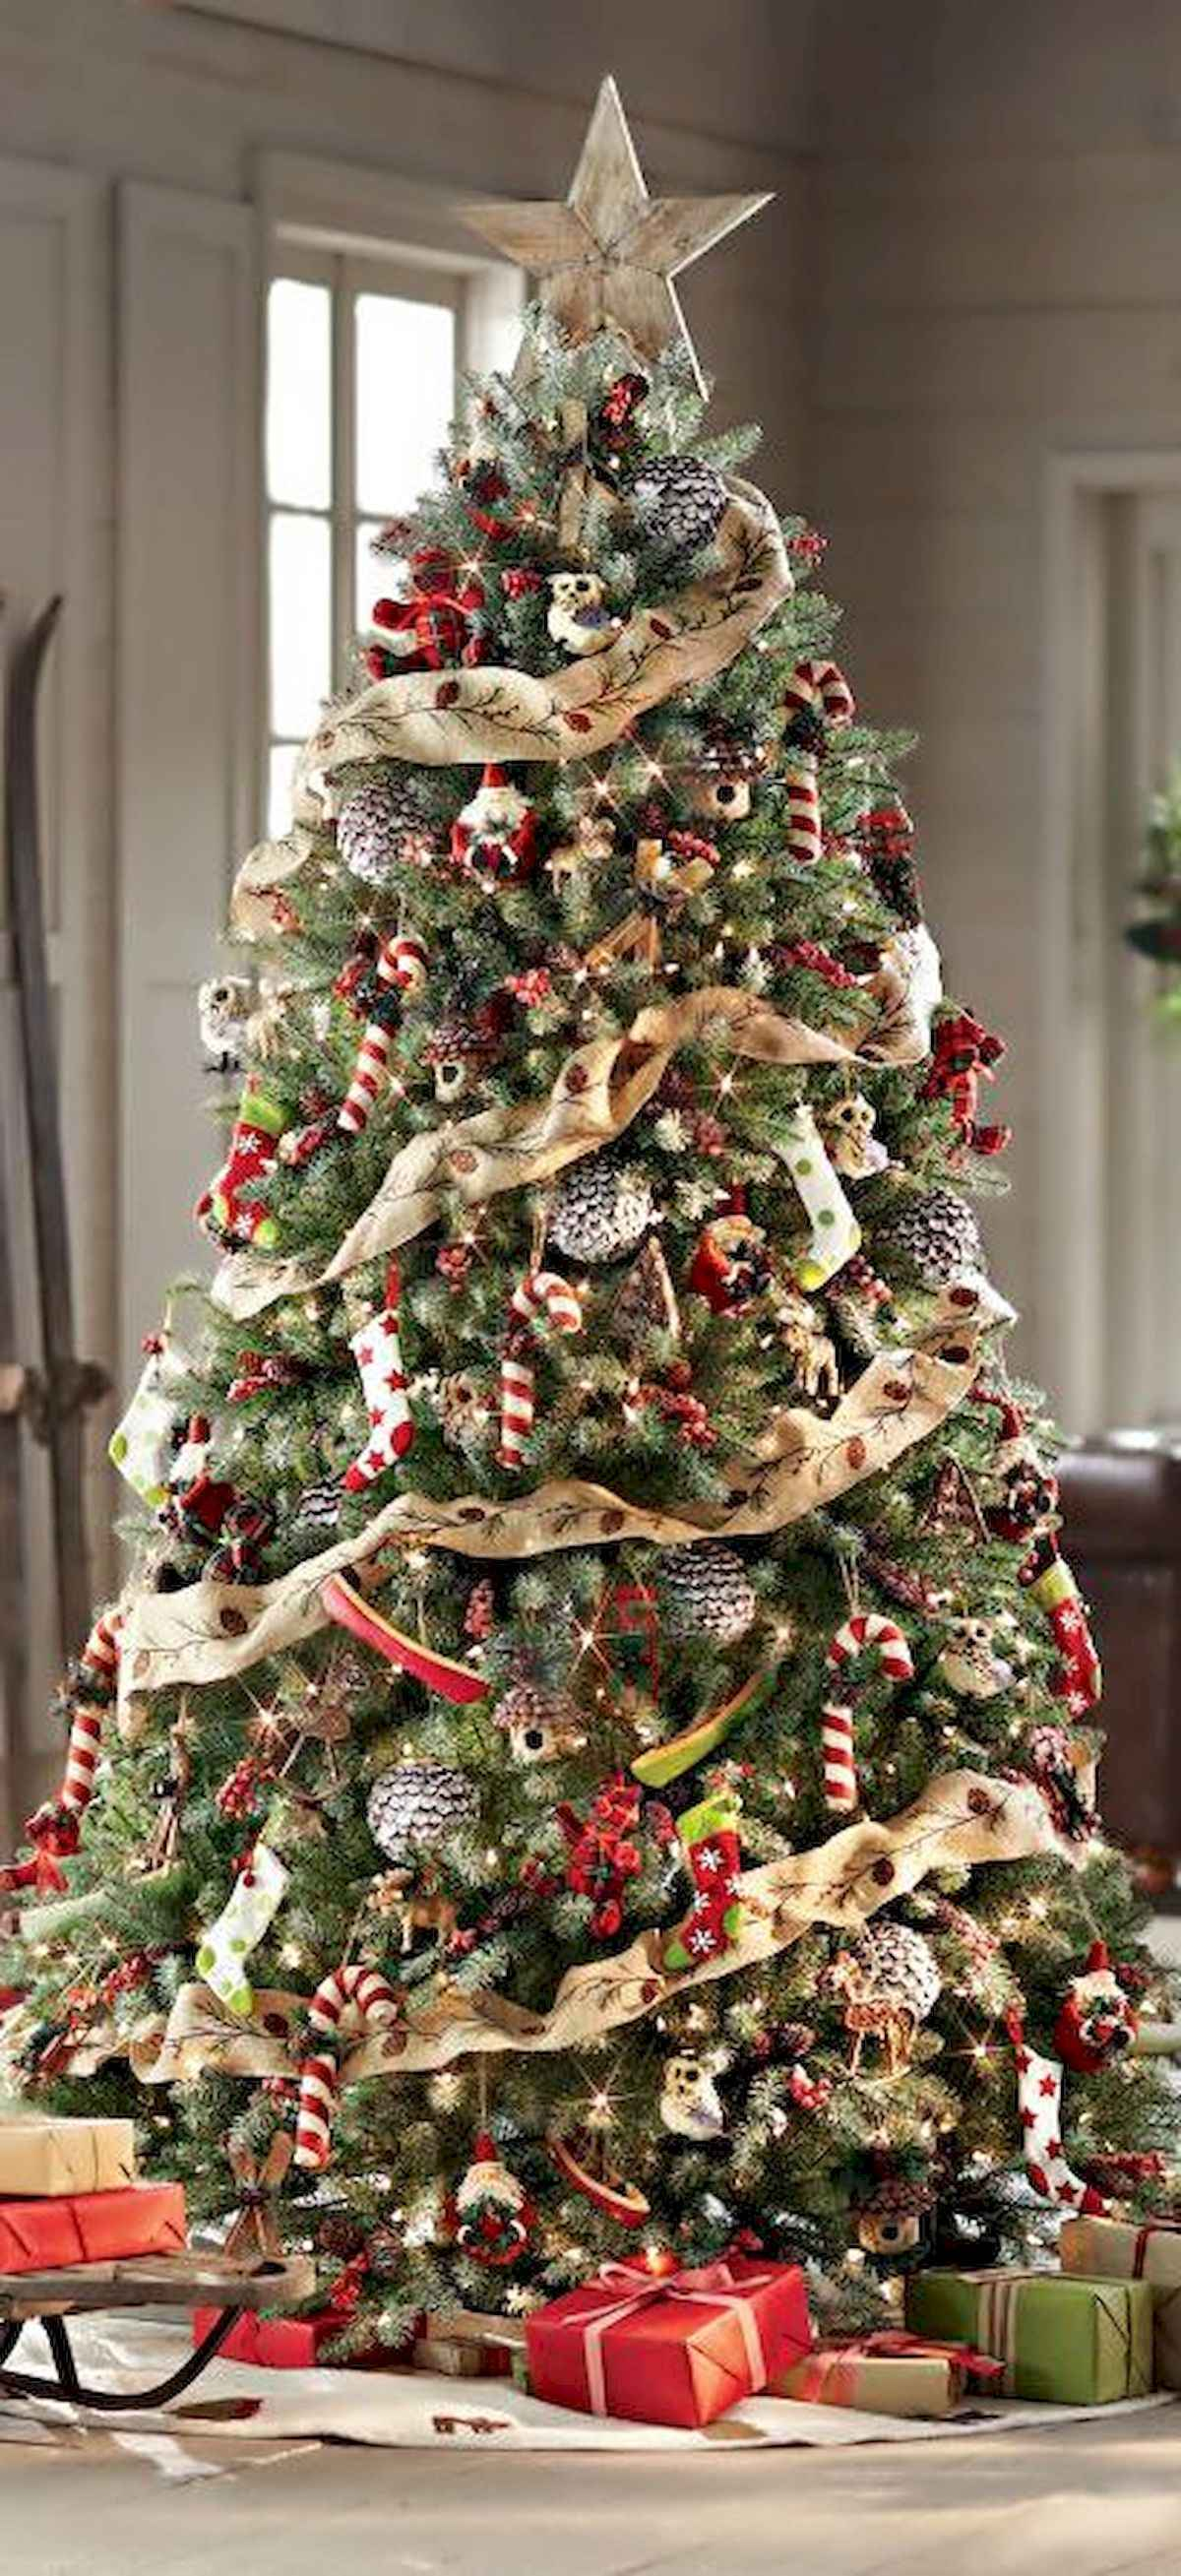 30 rustic and vintage christmas tree ideas decorations (28)